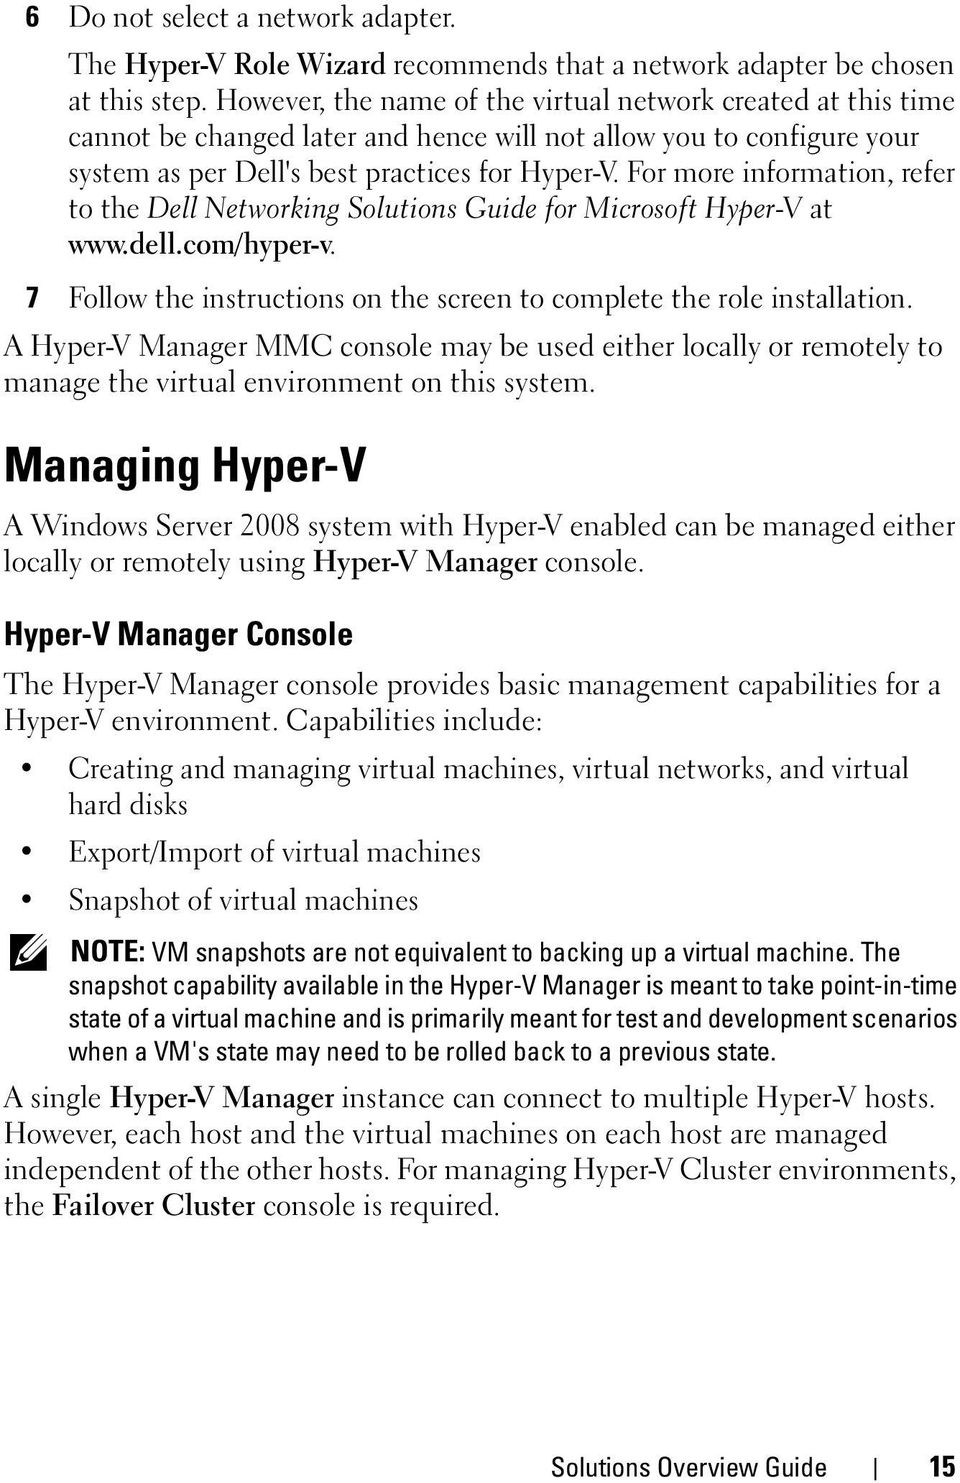 For more information, refer to the Dell Networking Solutions Guide for Microsoft Hyper-V at www.dell.com/hyper-v. 7 Follow the instructions on the screen to complete the role installation.